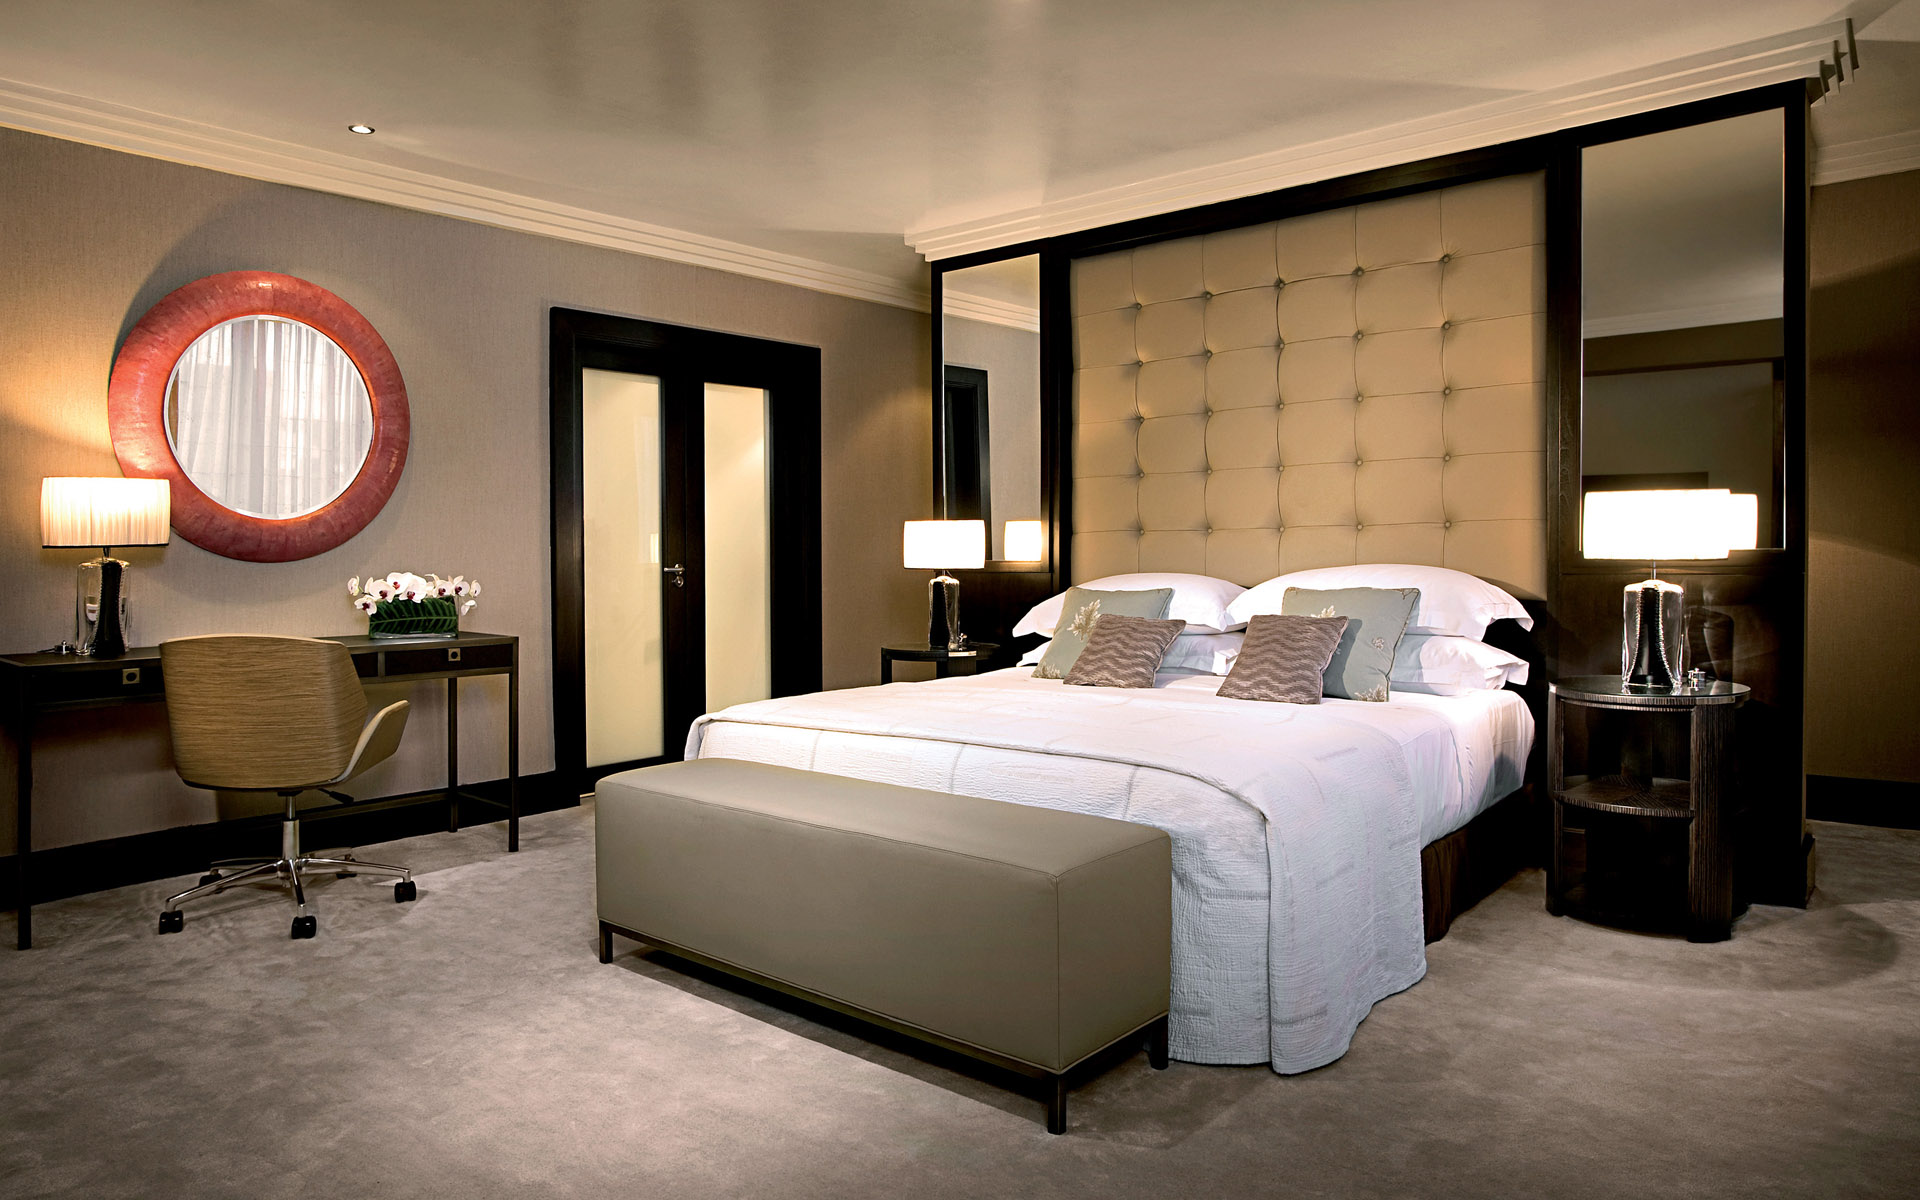 Awesome Bedroom Interior Design Wallpaper Hd Imagebank Biz Interior Design Bedroom Ideas